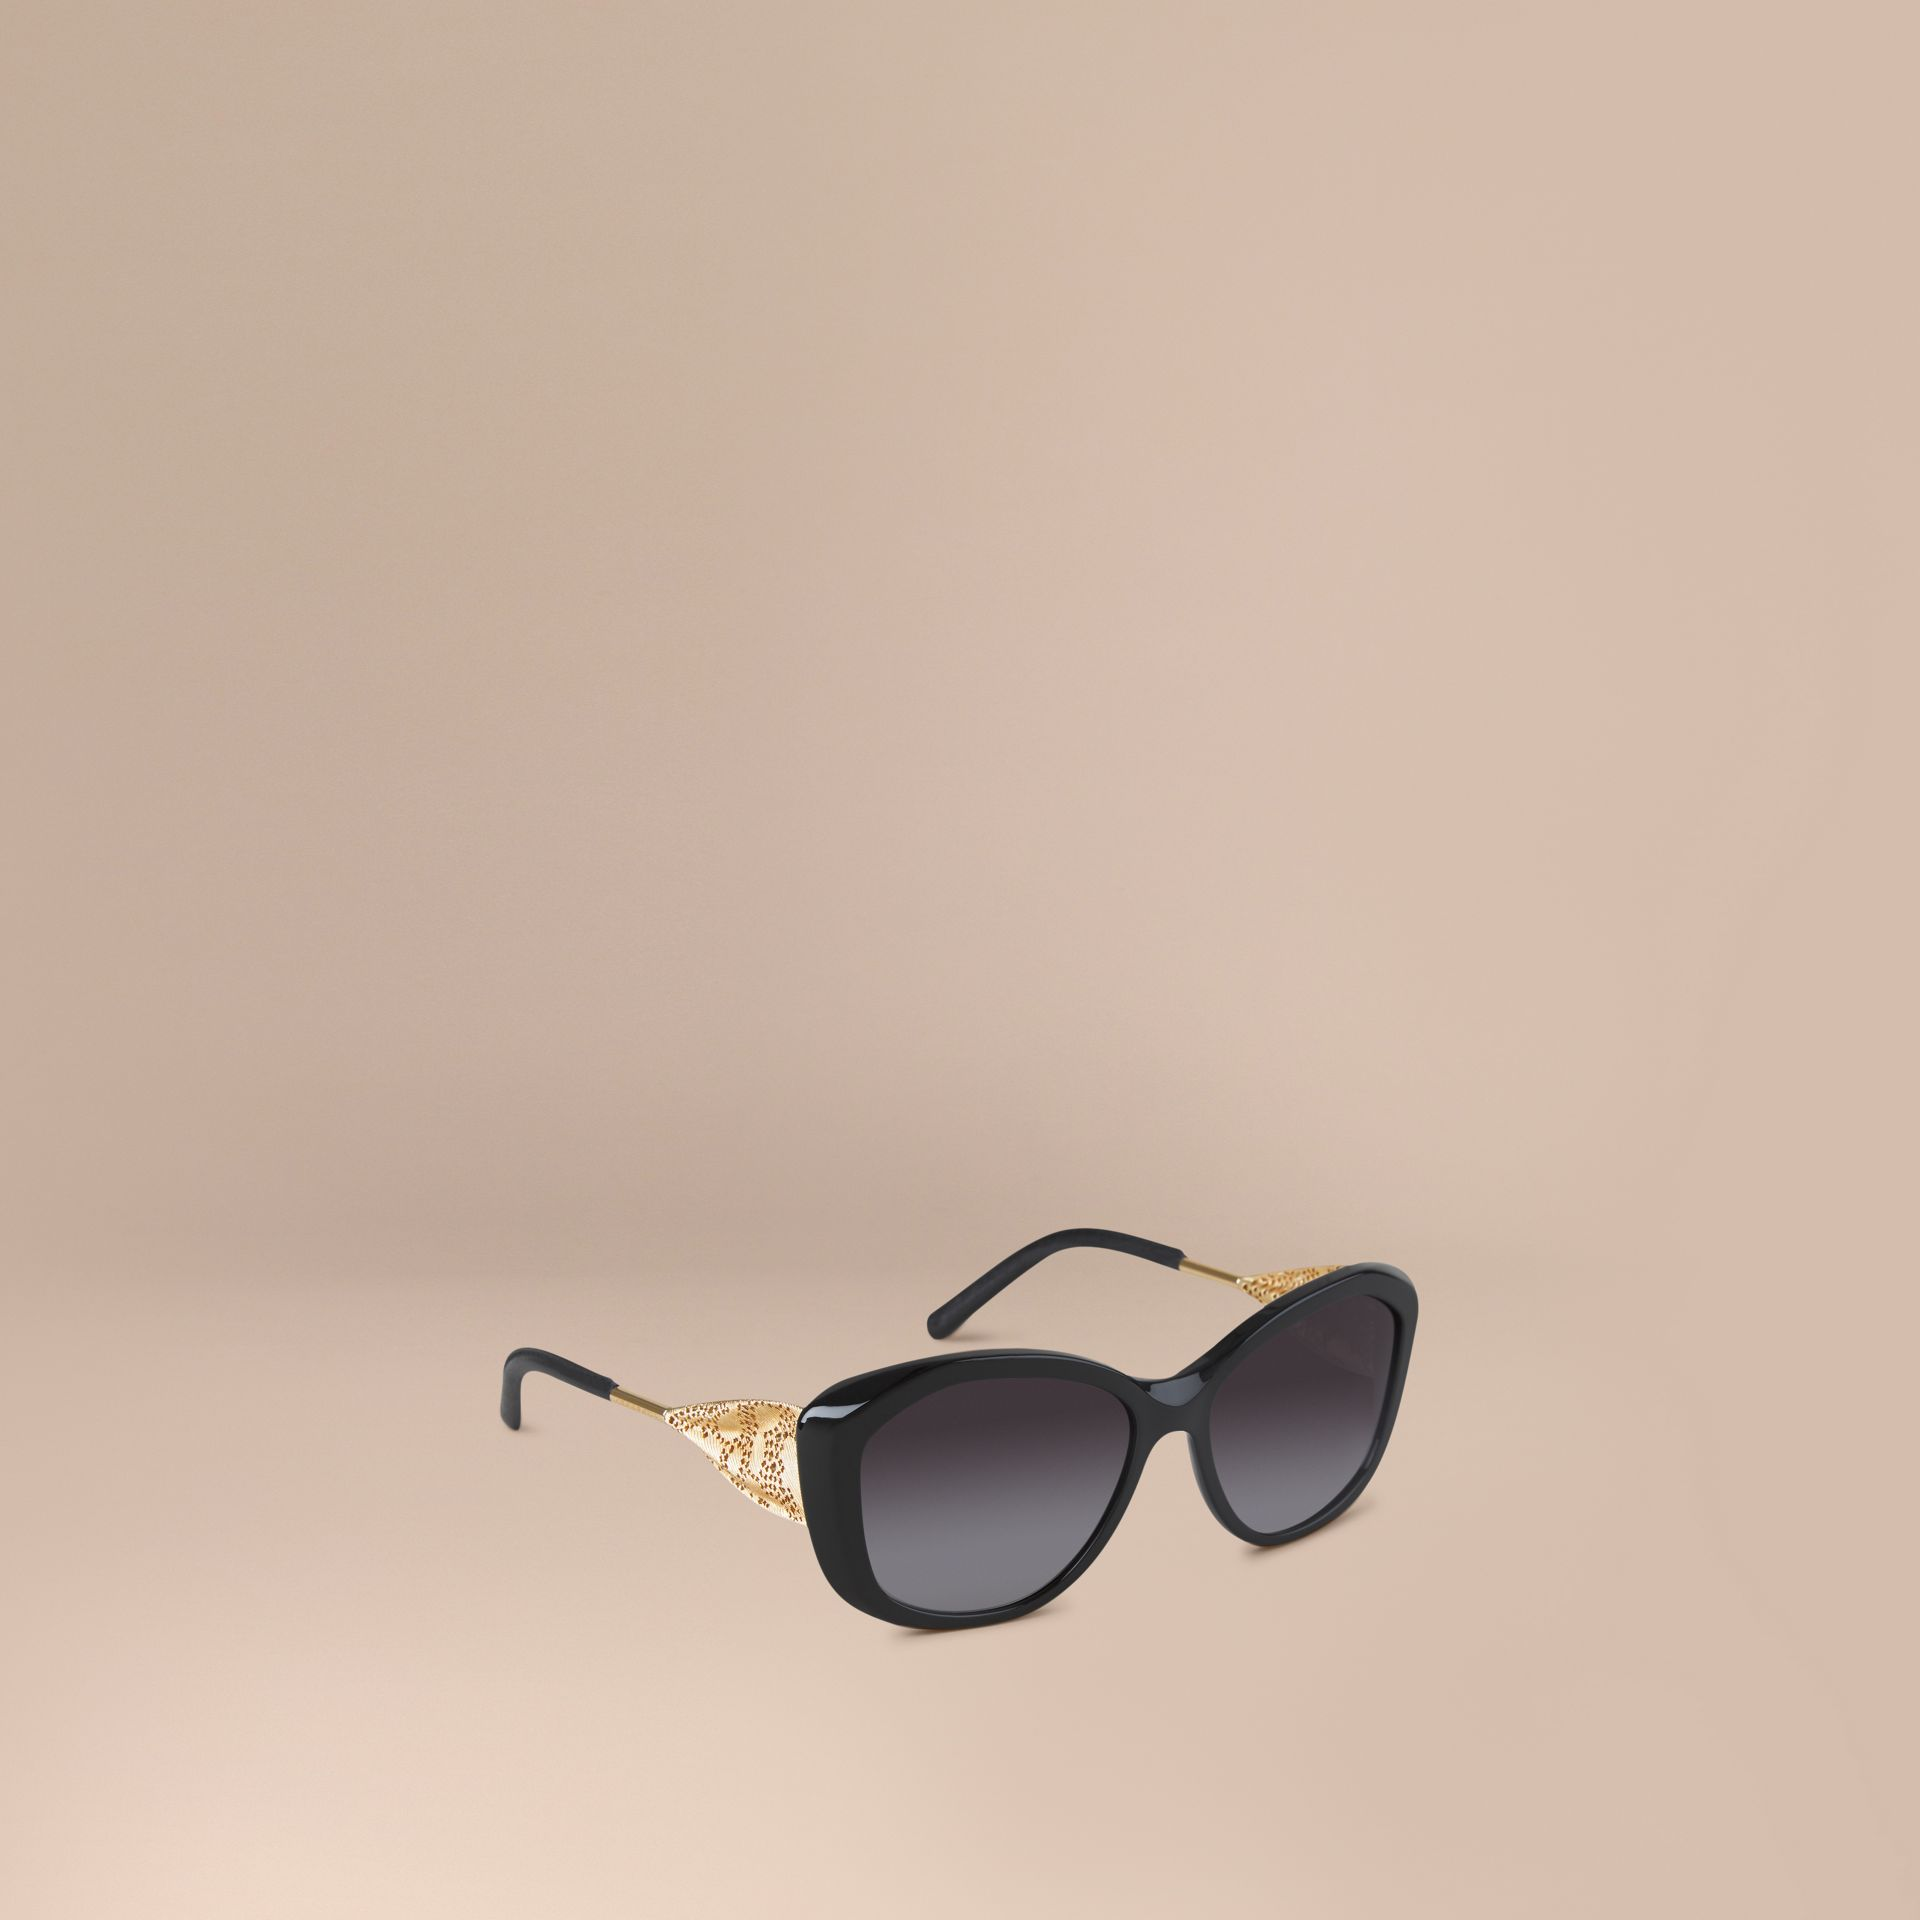 Gabardine Lace Collection Square Frame Sunglasses in Black - gallery image 1